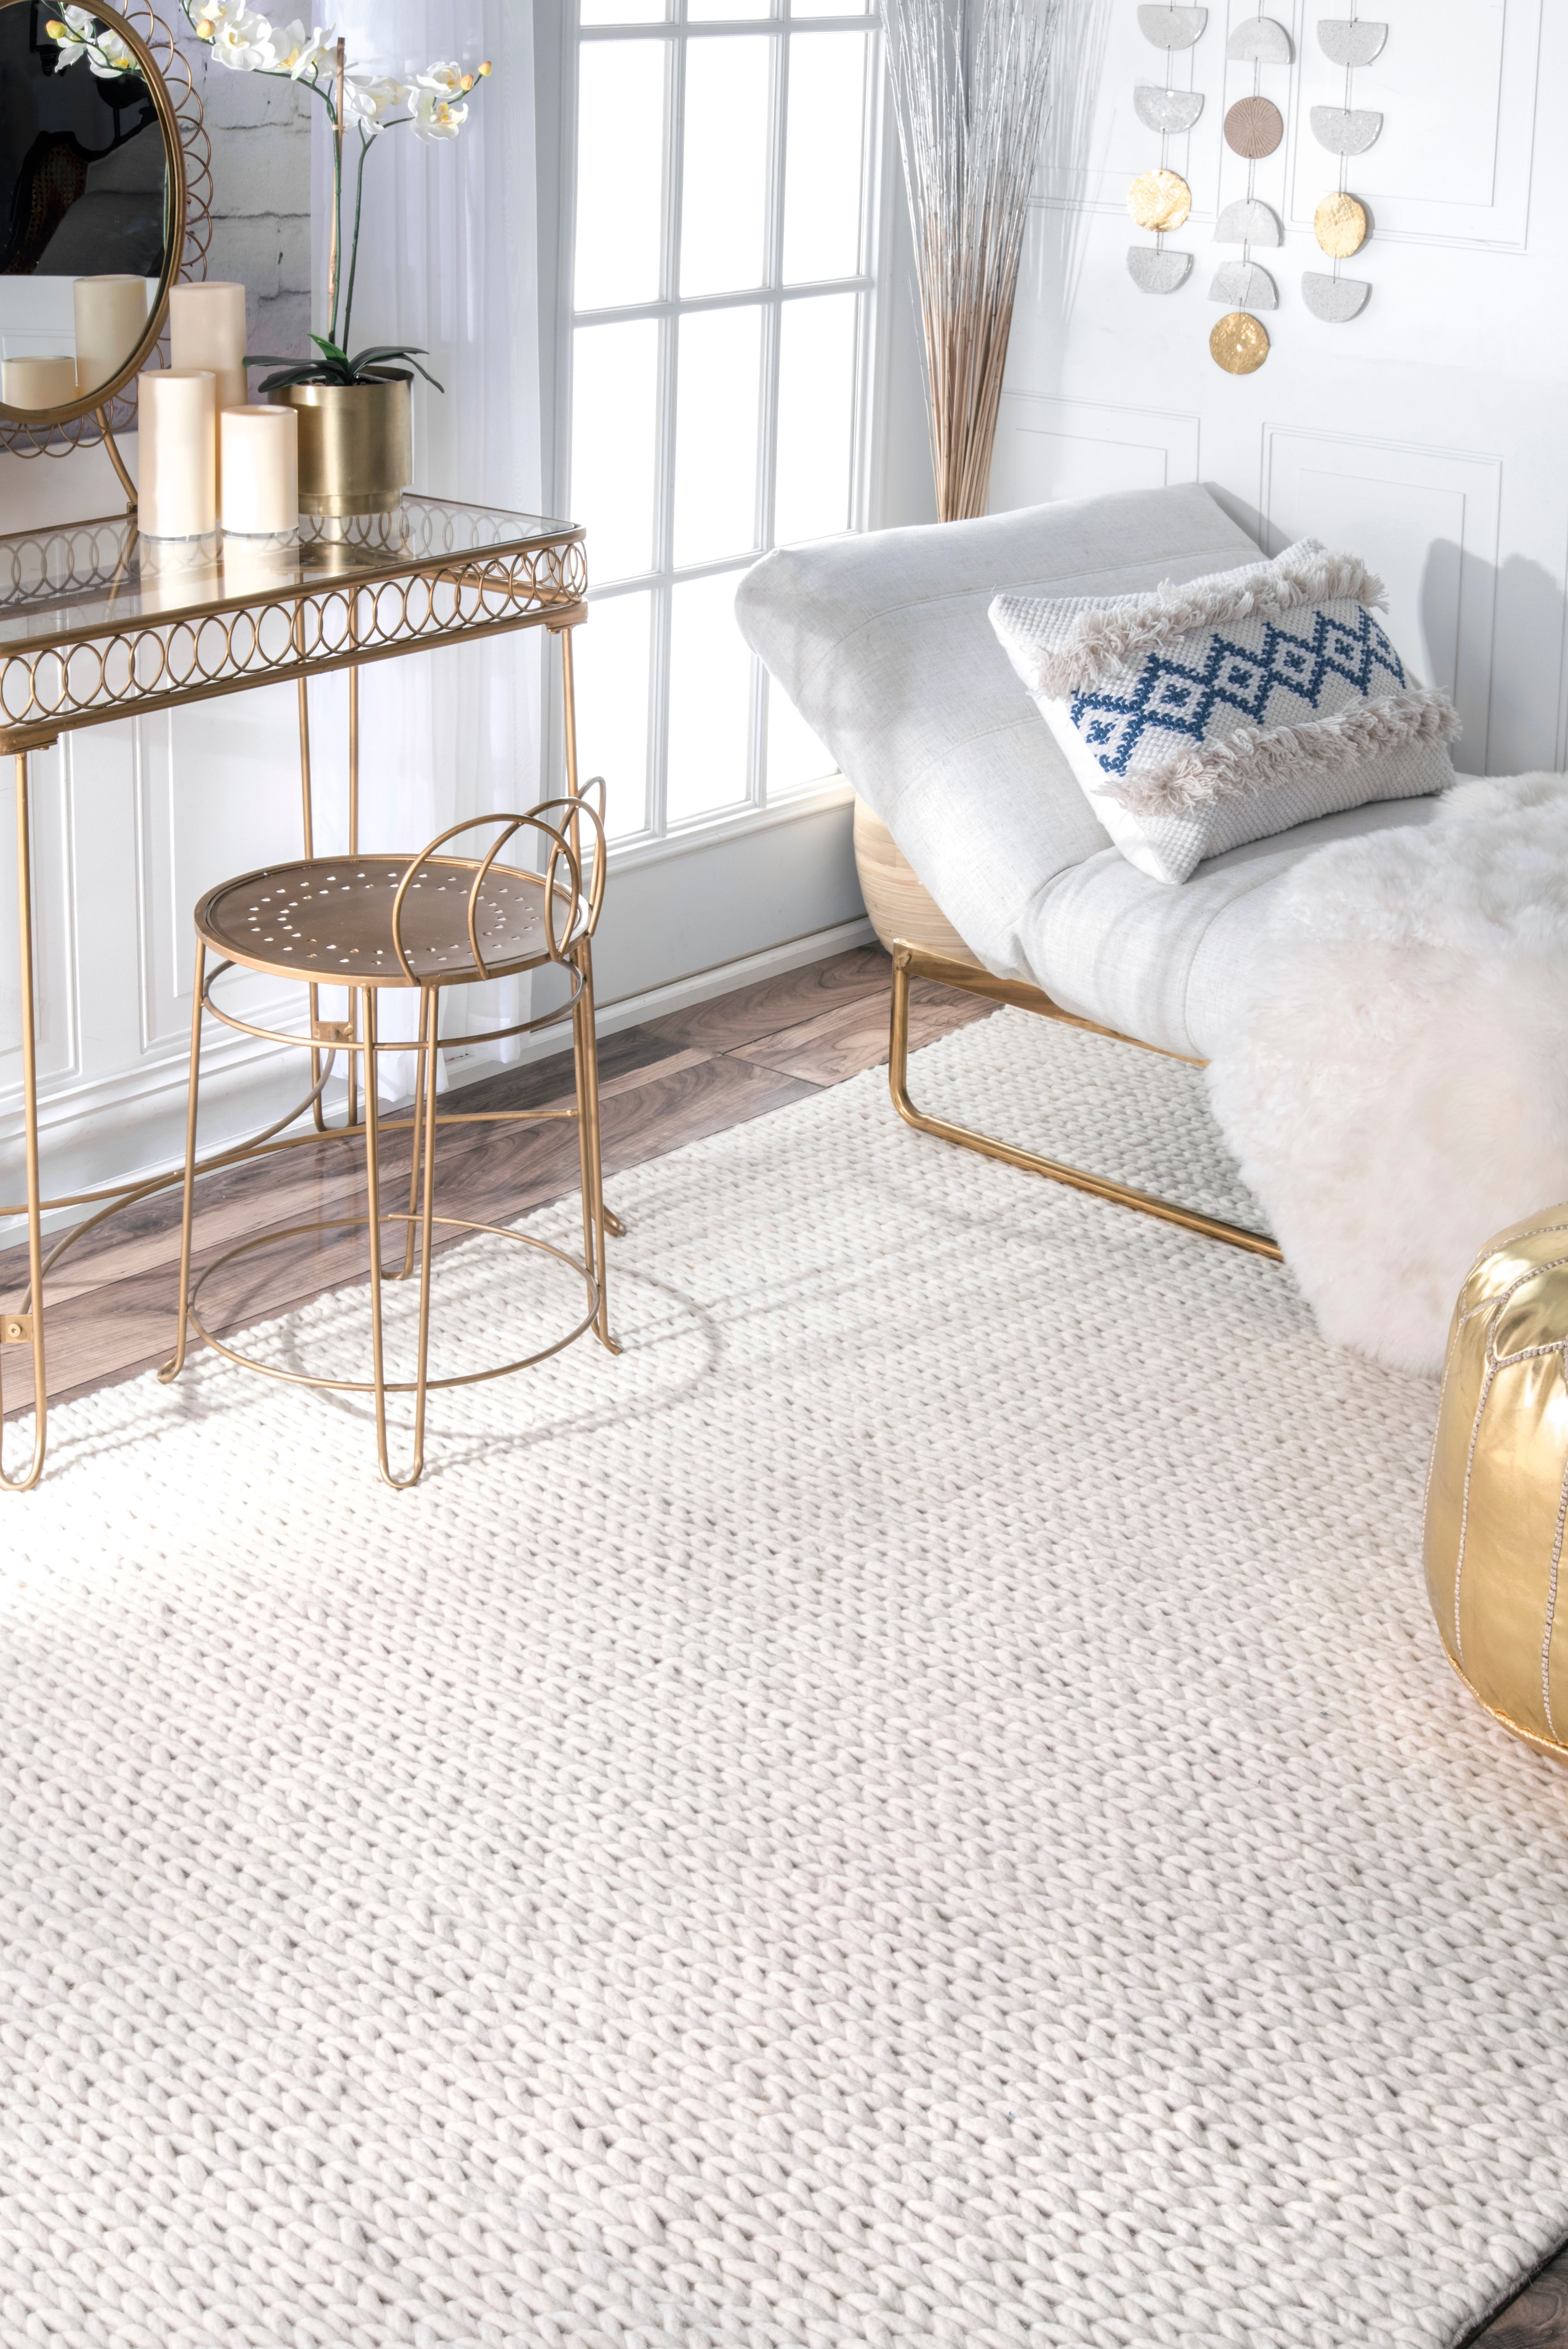 rug for living room size%0A something basic like this for dining room  Rugs USA  Area Rugs in many  styles including Contemporary  Braided  Outdoor and Flokati Shag rugs